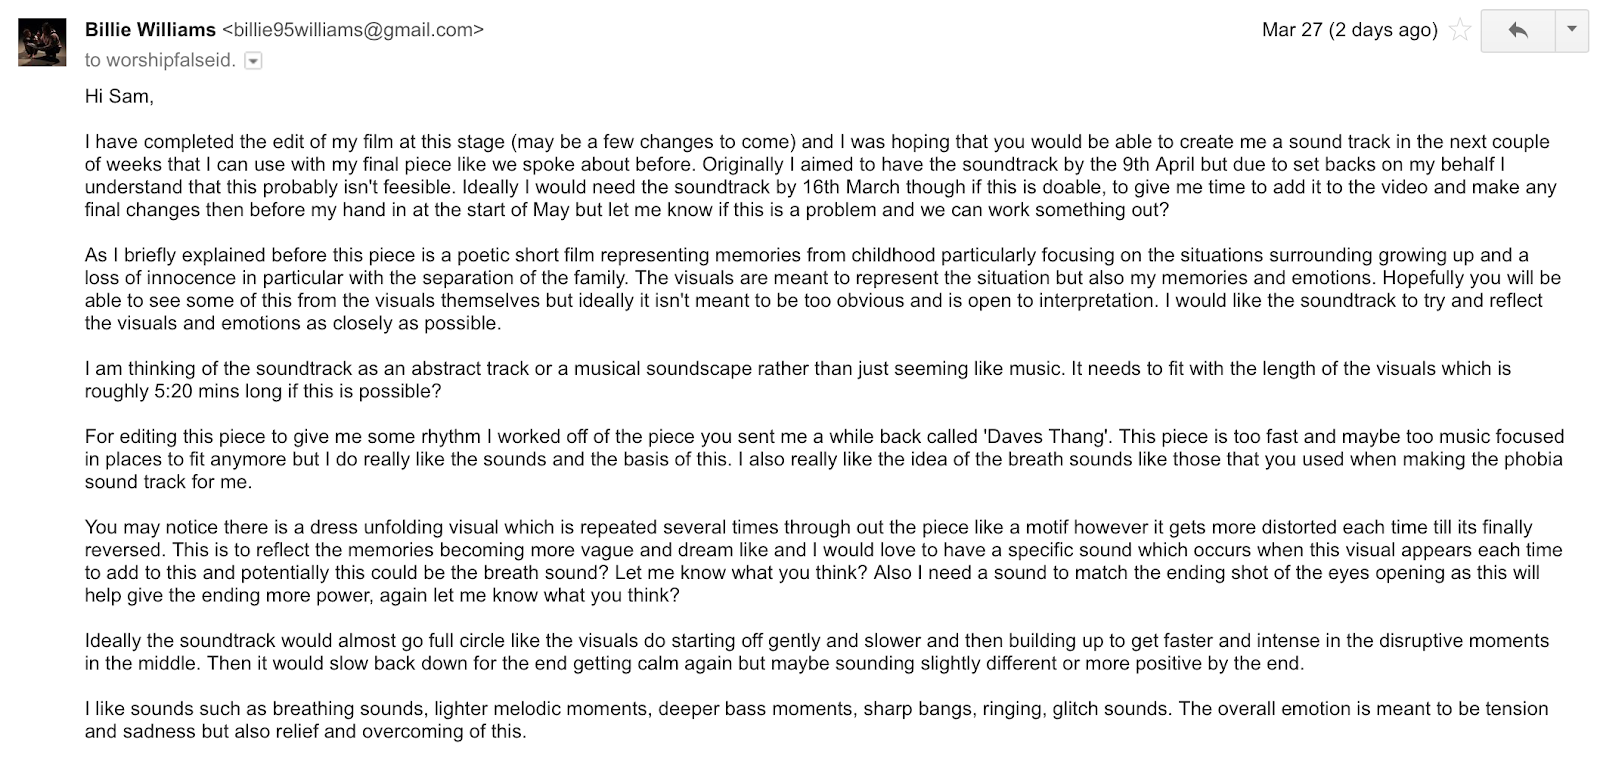 The Musician Then Phoned Me To Let Know He Had Received This Email And Was Very Happy With Everything I Said Suggested Will Be